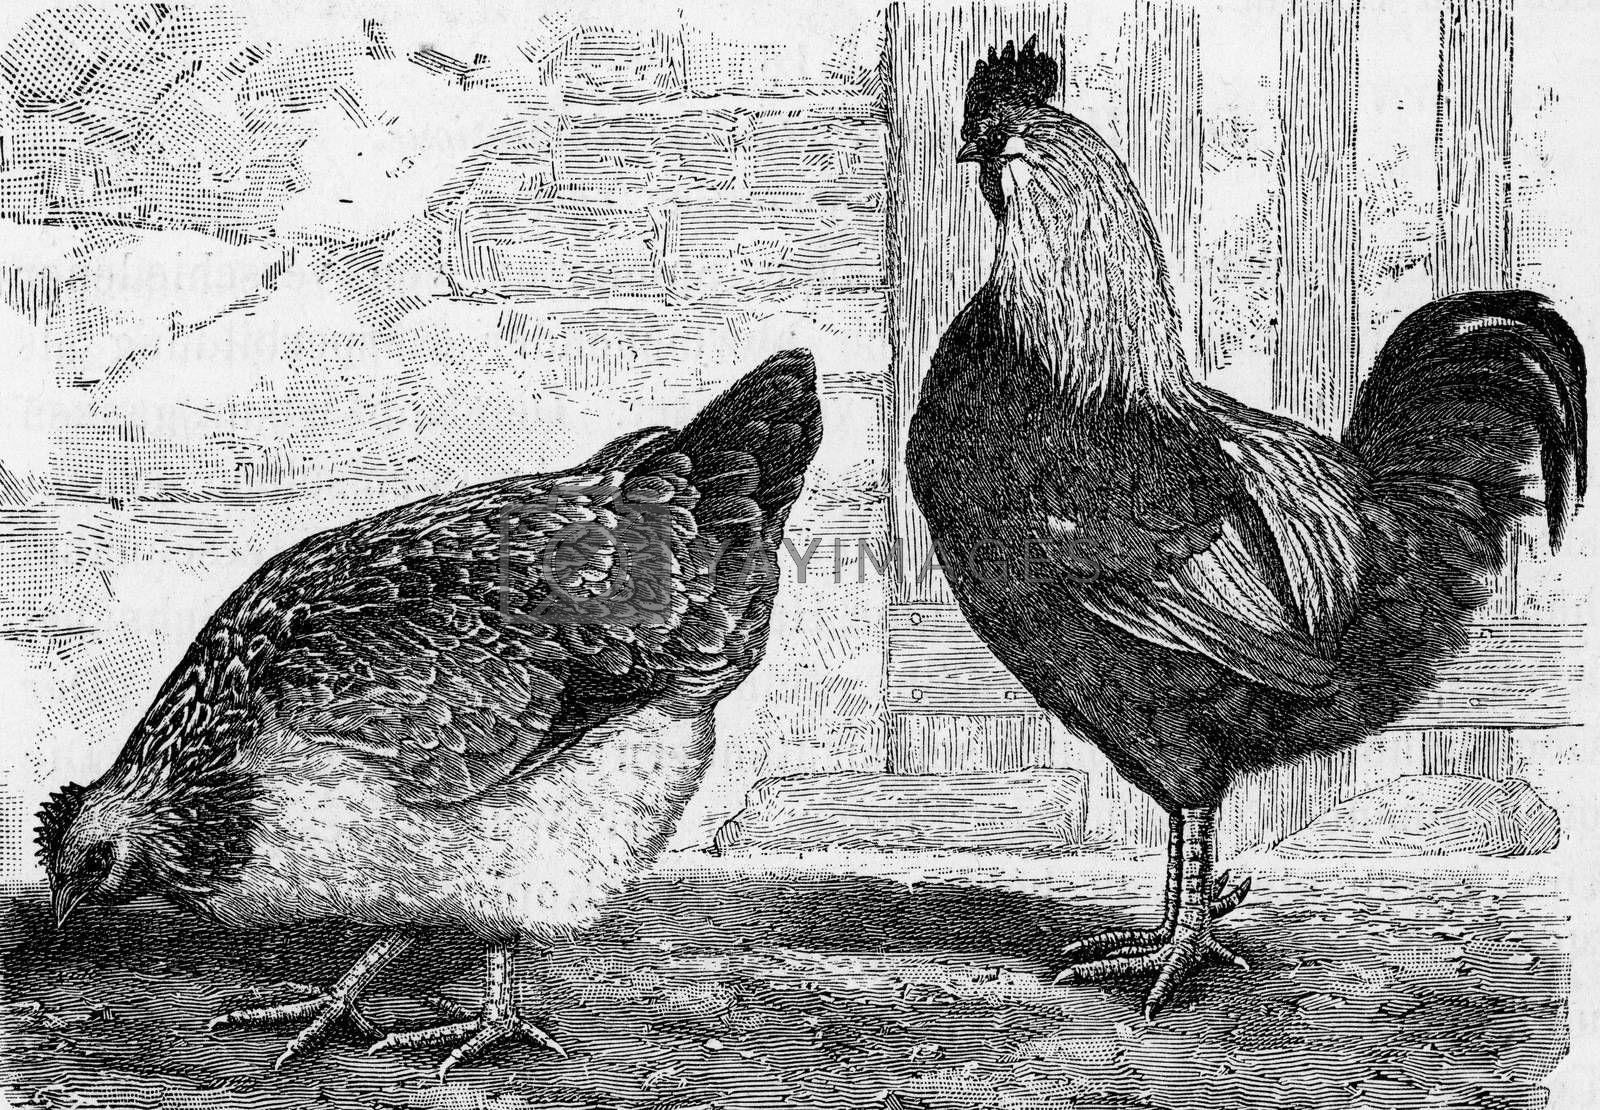 The house hen, Gallus domesticus, vintage engraving. by Morphart